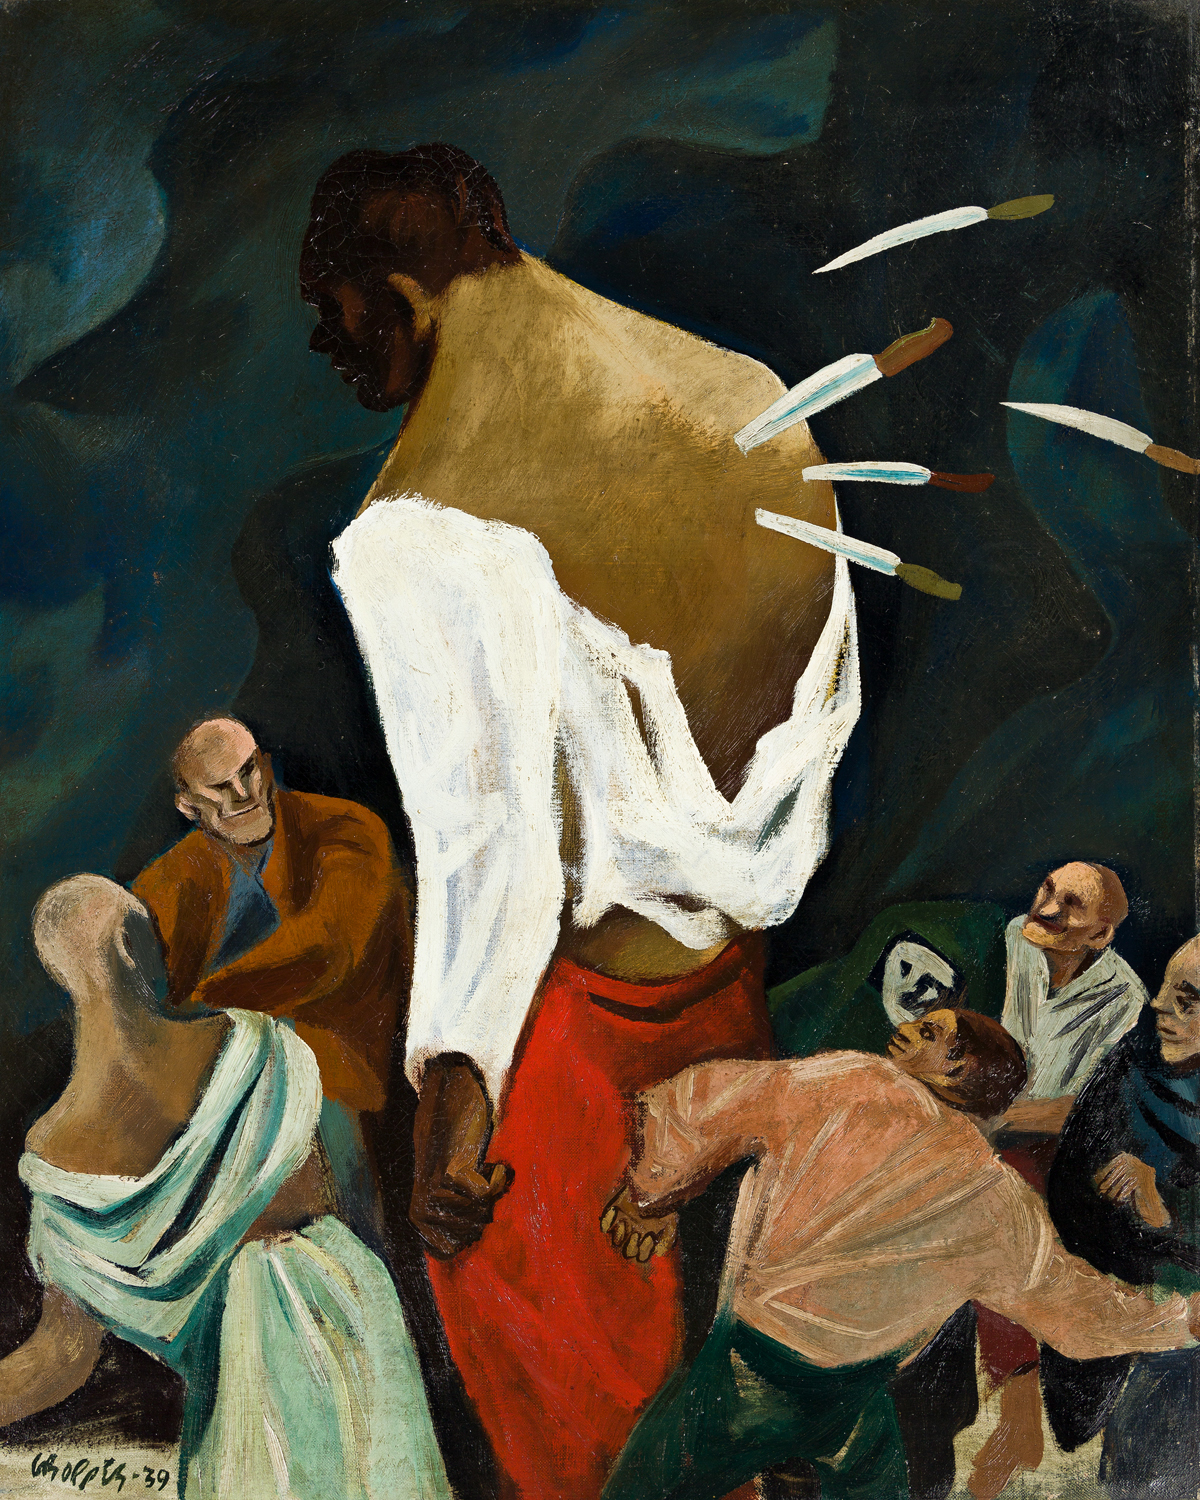 WILLIAM GROPPER (1897-1977) Stabbed in the Back.